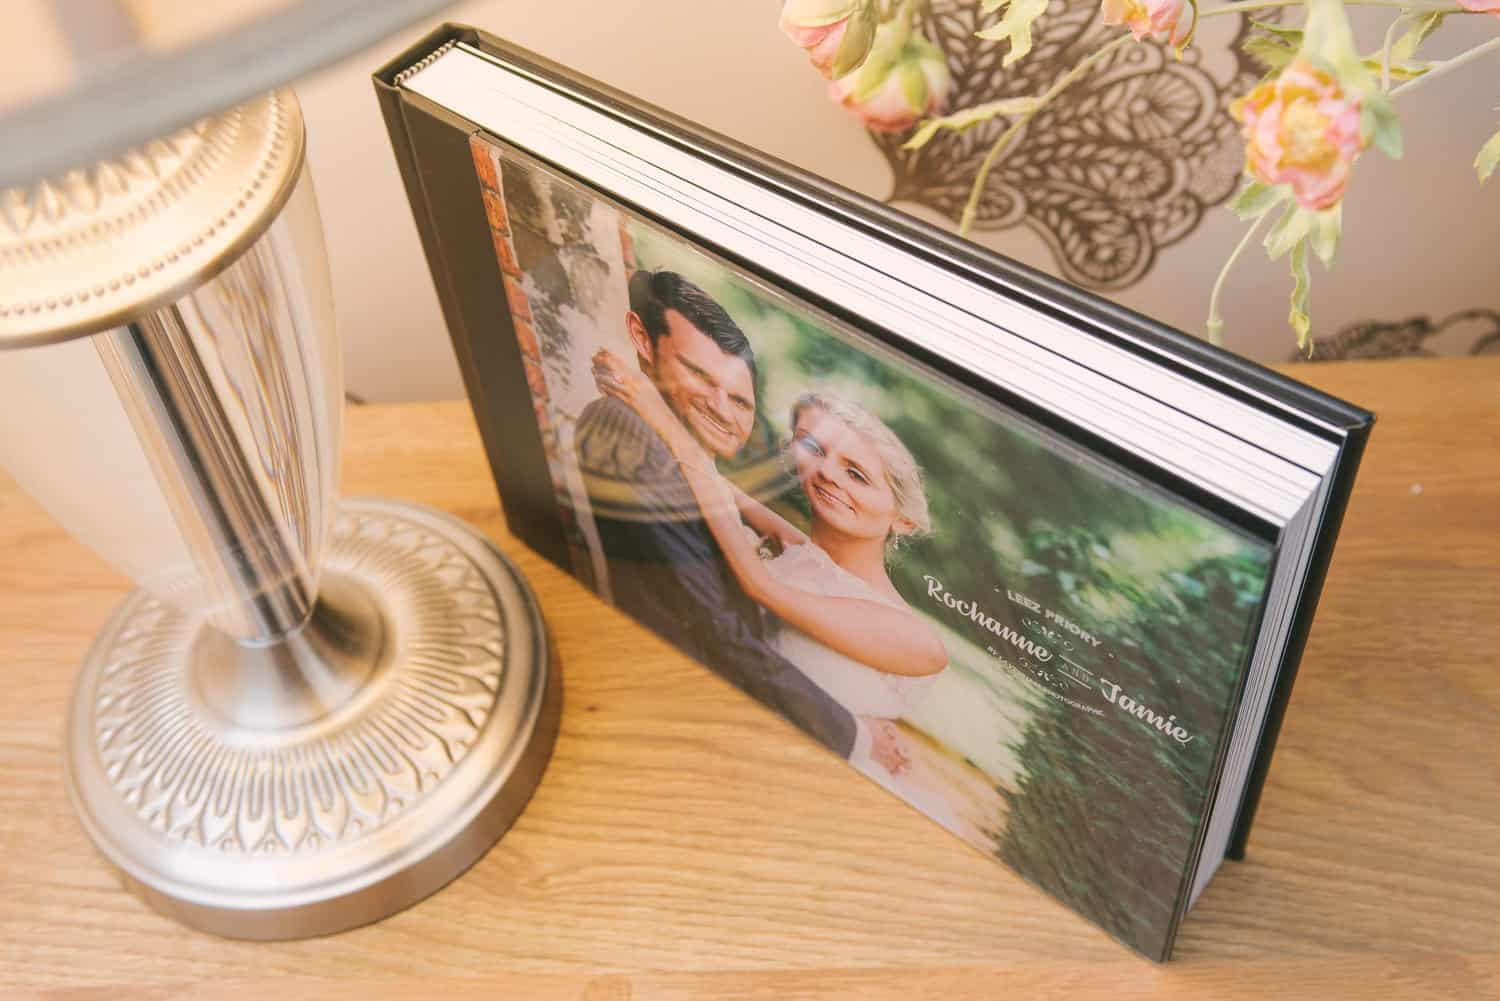 Standard wedding album with black leatherette and acrylic cover